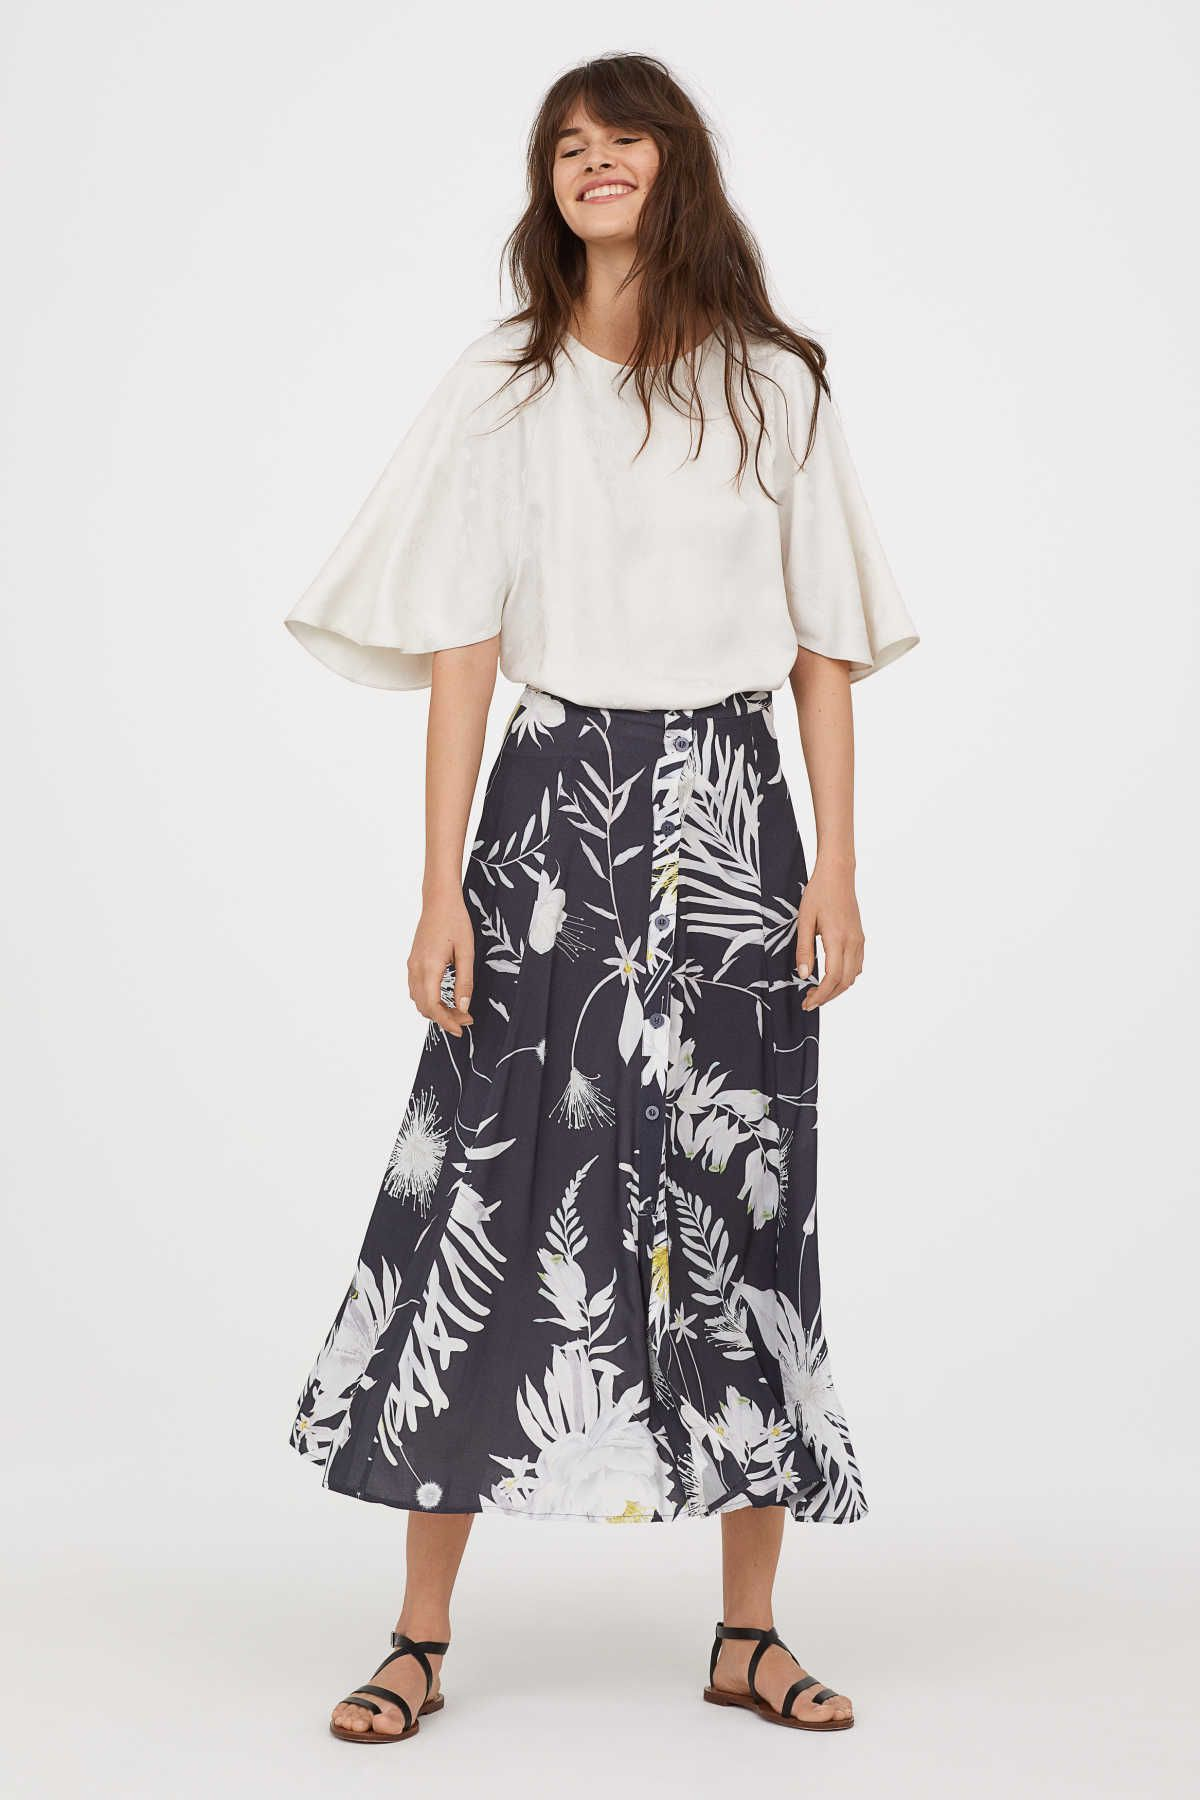 f622f87641 ANNA GLOVER x H&M. Long circle skirt in soft, woven viscose with a printed  pattern. Buttons at front. Unlined.